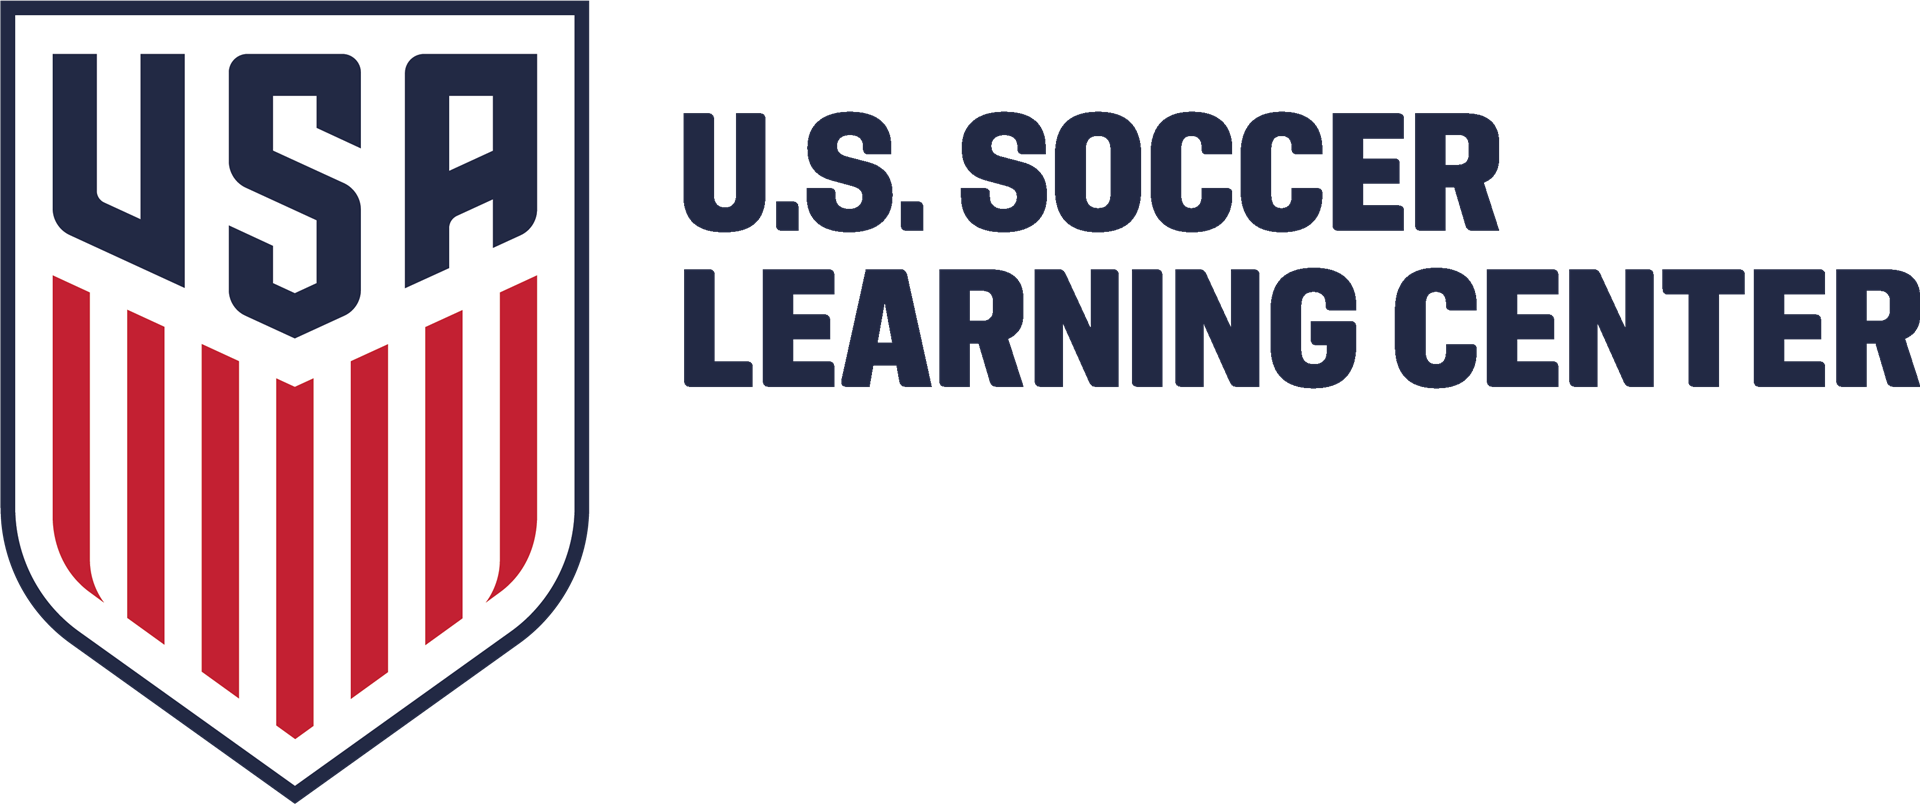 uss-learning-center-logo-blue